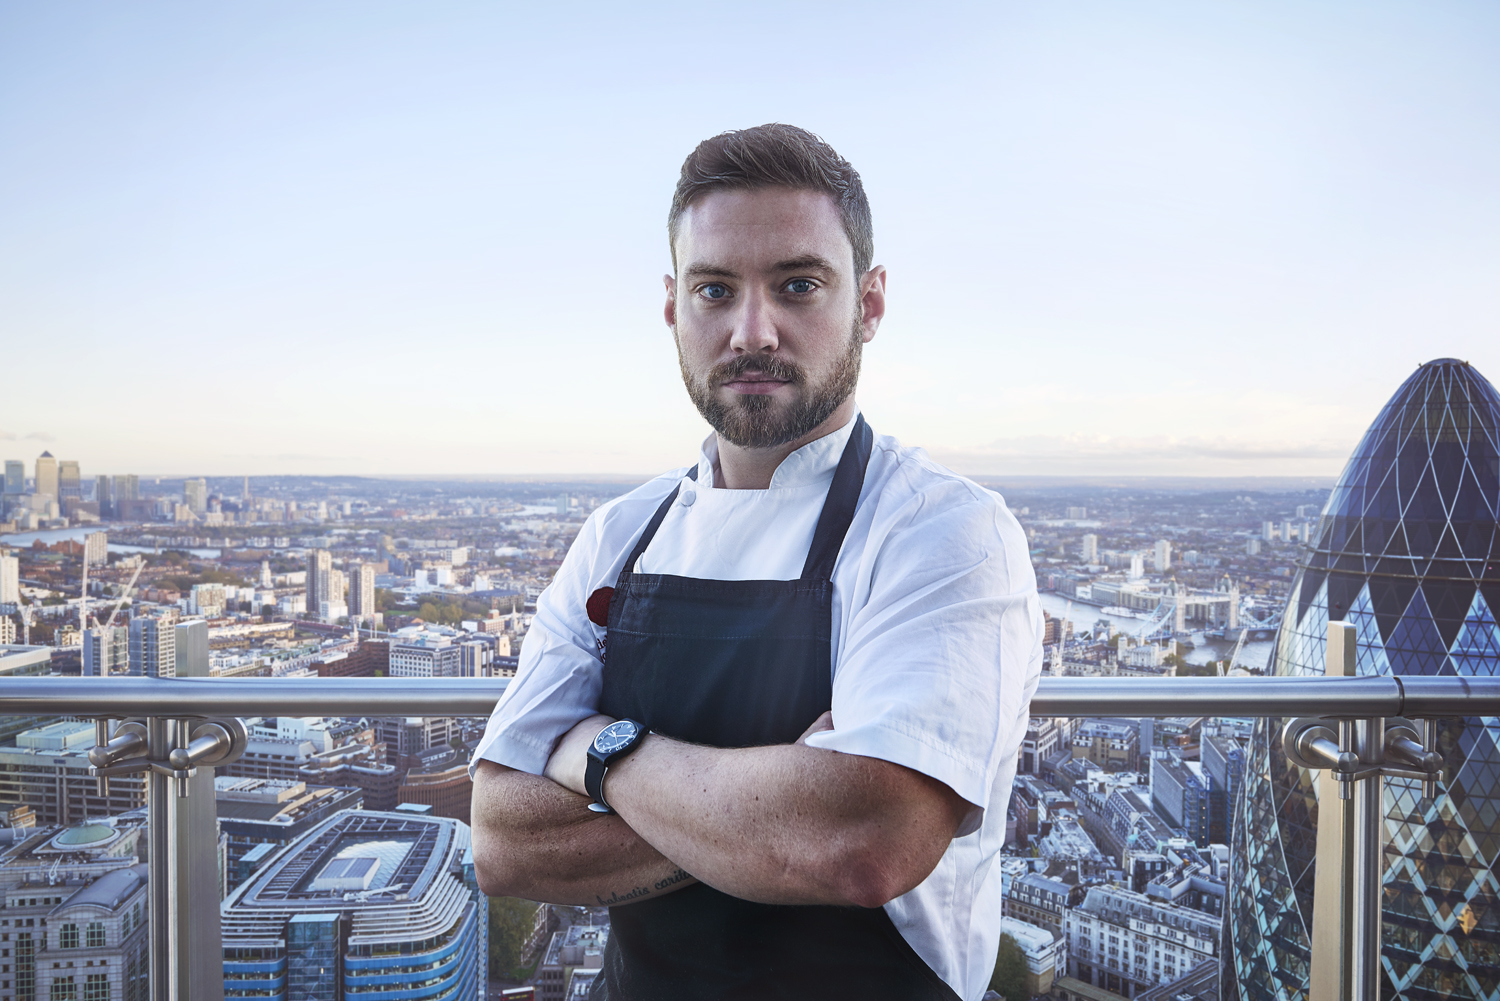 Dan Doherty - The Executive Chef at the Duck & Waffle in East London. He's shown hereon the Duck & Waffle's 40th floor balcony.